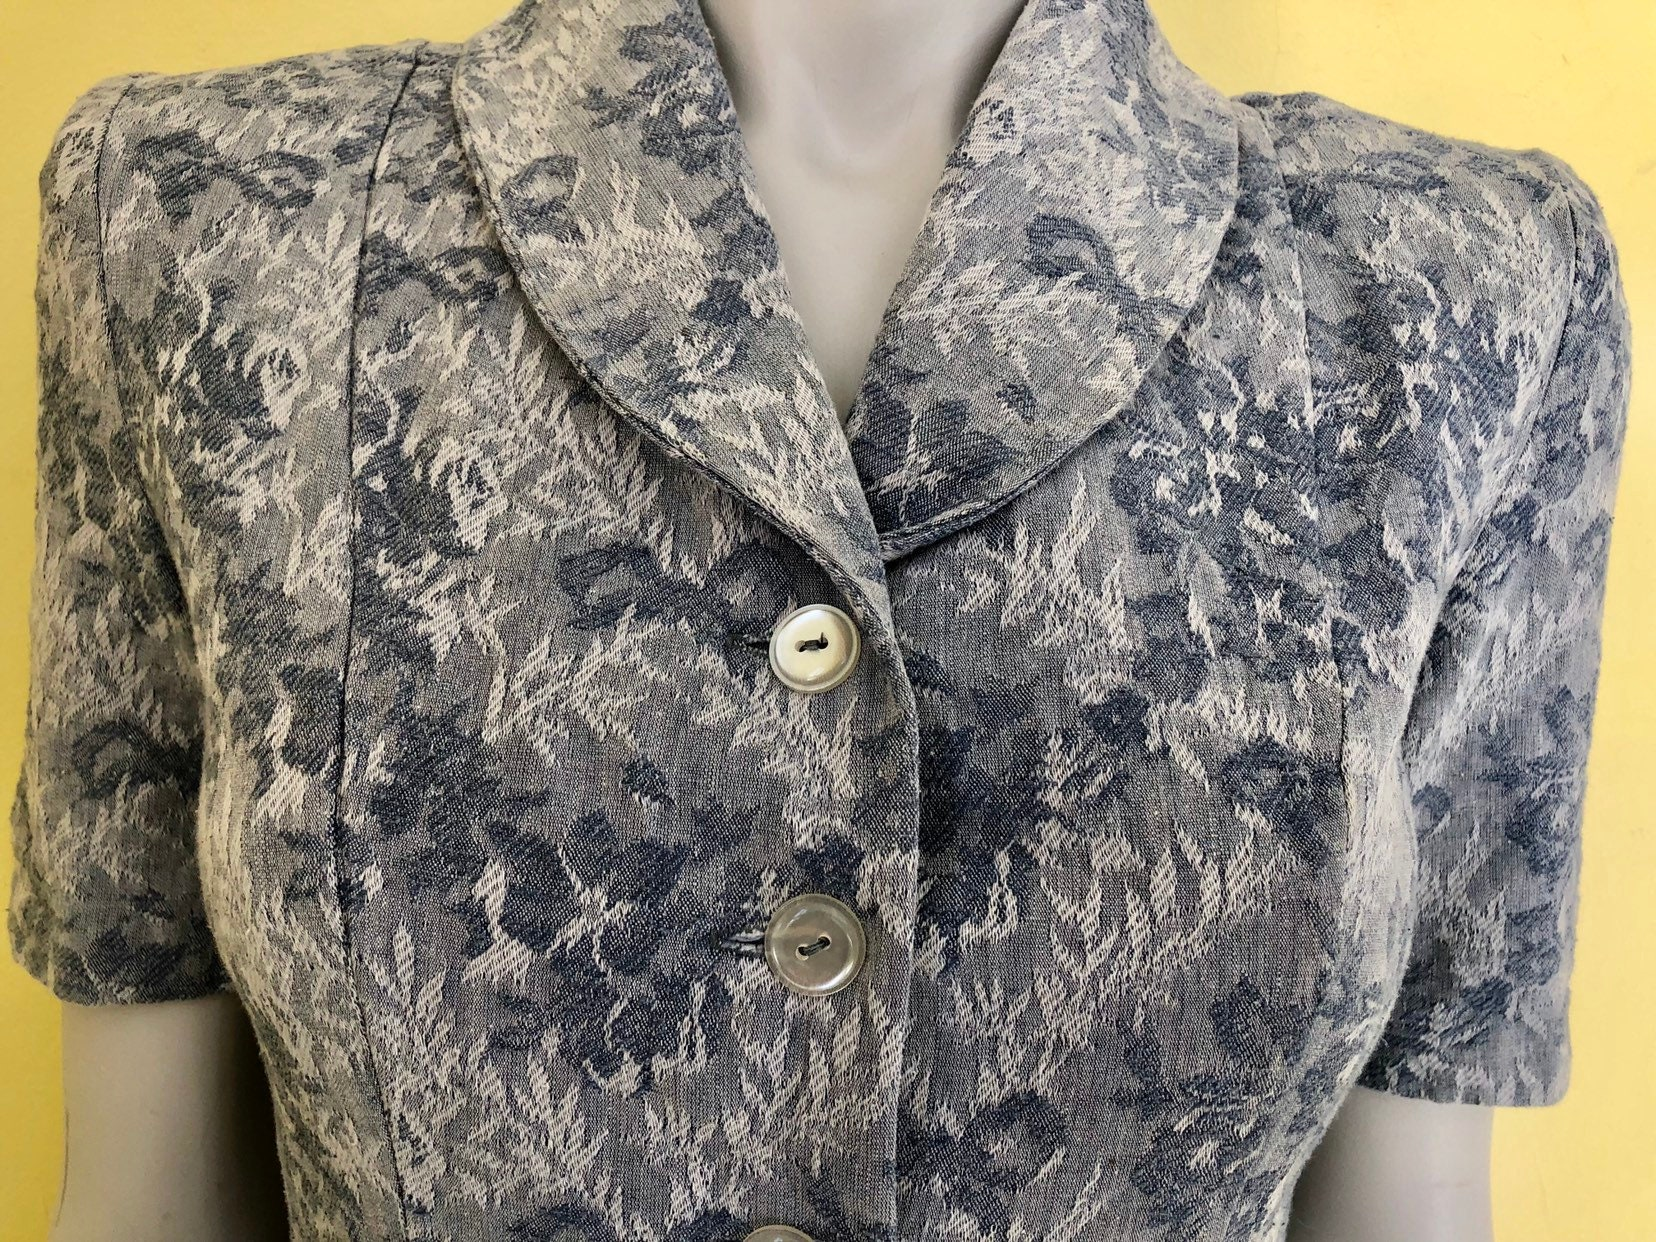 80s Dresses   Casual to Party Dresses 1980s, Damask, Powder Blue, Button Front, Tailored Dress, Shoulder Pads, Size Small $0.00 AT vintagedancer.com